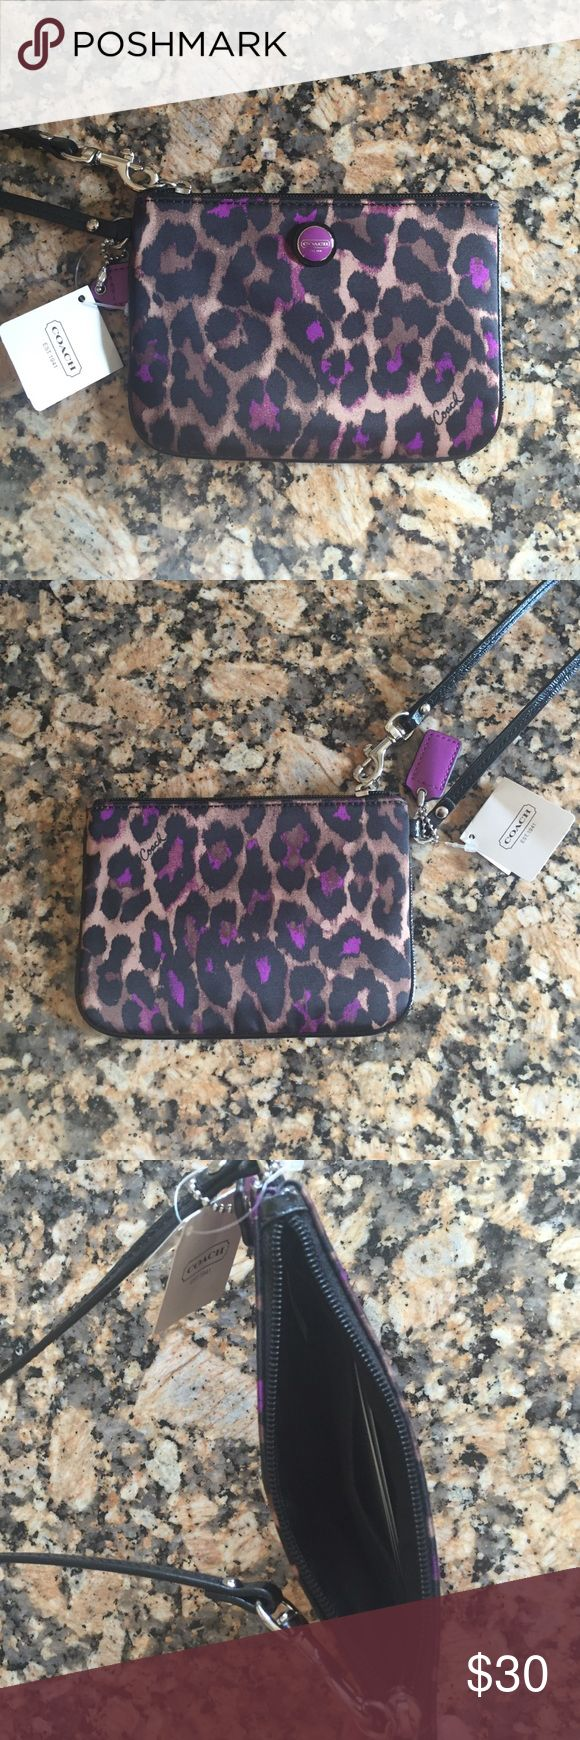 Small coach wristlet Cheetah print wristlet, never been used. NWT Bags Clutches & Wristlets